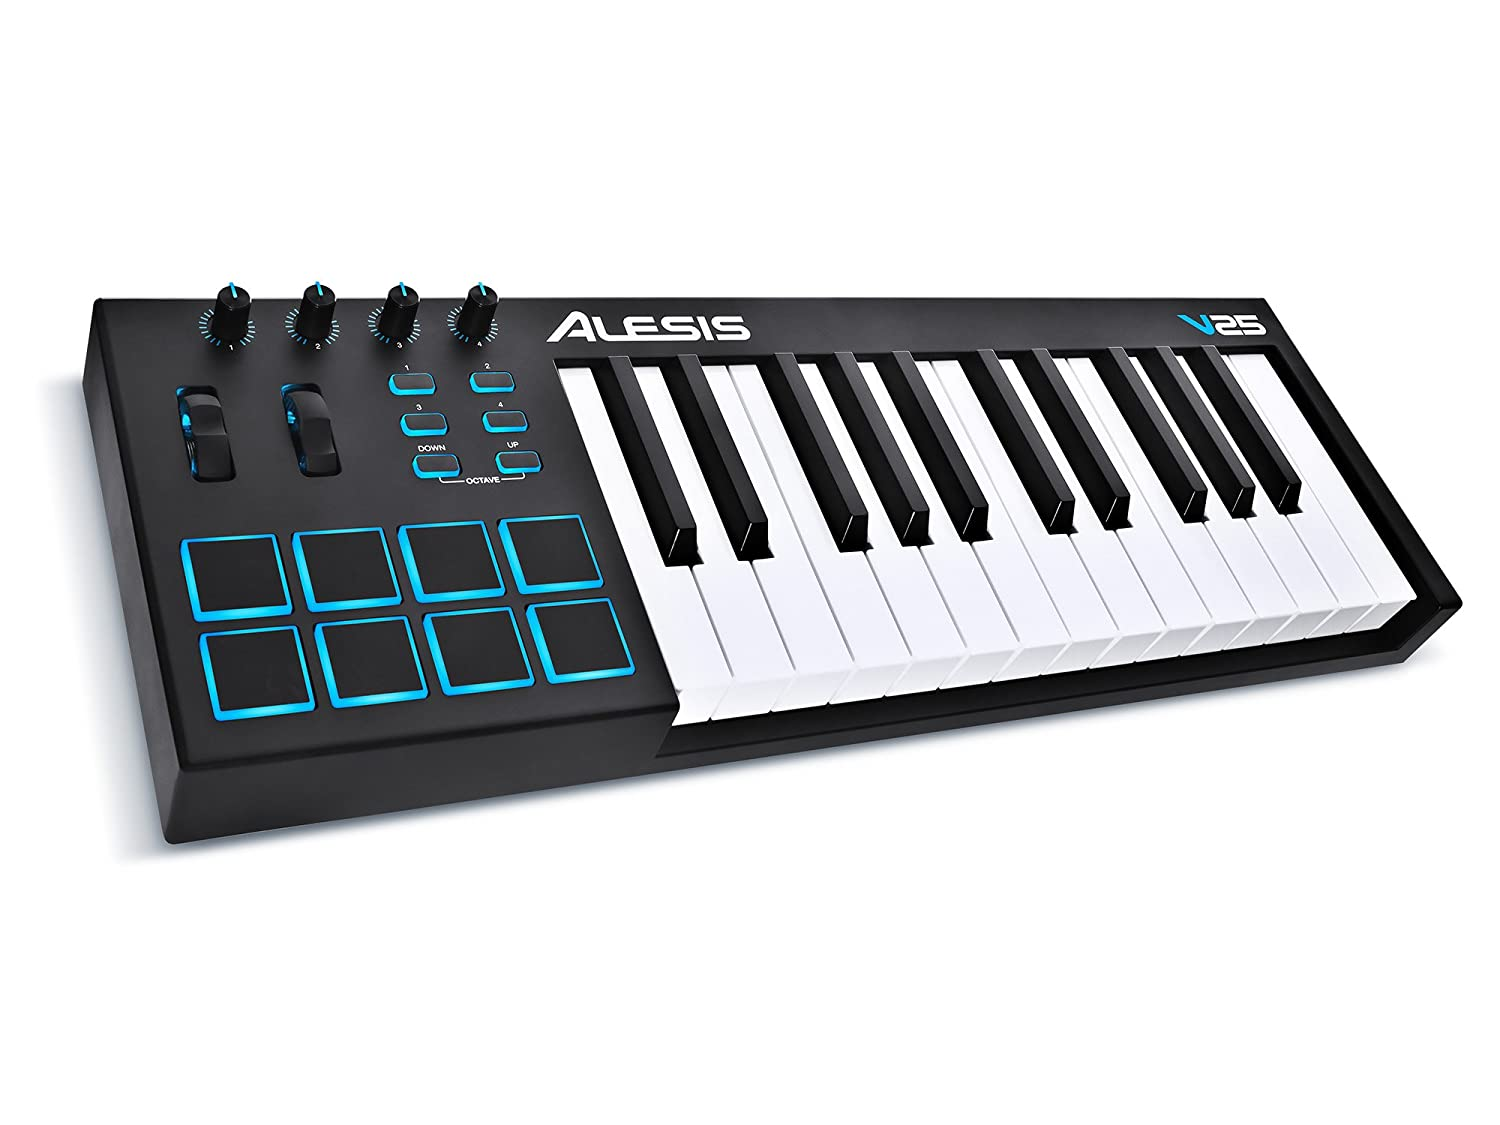 Alesis V49 | 49-Key USB MIDI Keyboard & Drum Pad Controller (8 Pads / 4 Knobs / 4 Buttons) inMusic Brands Inc.